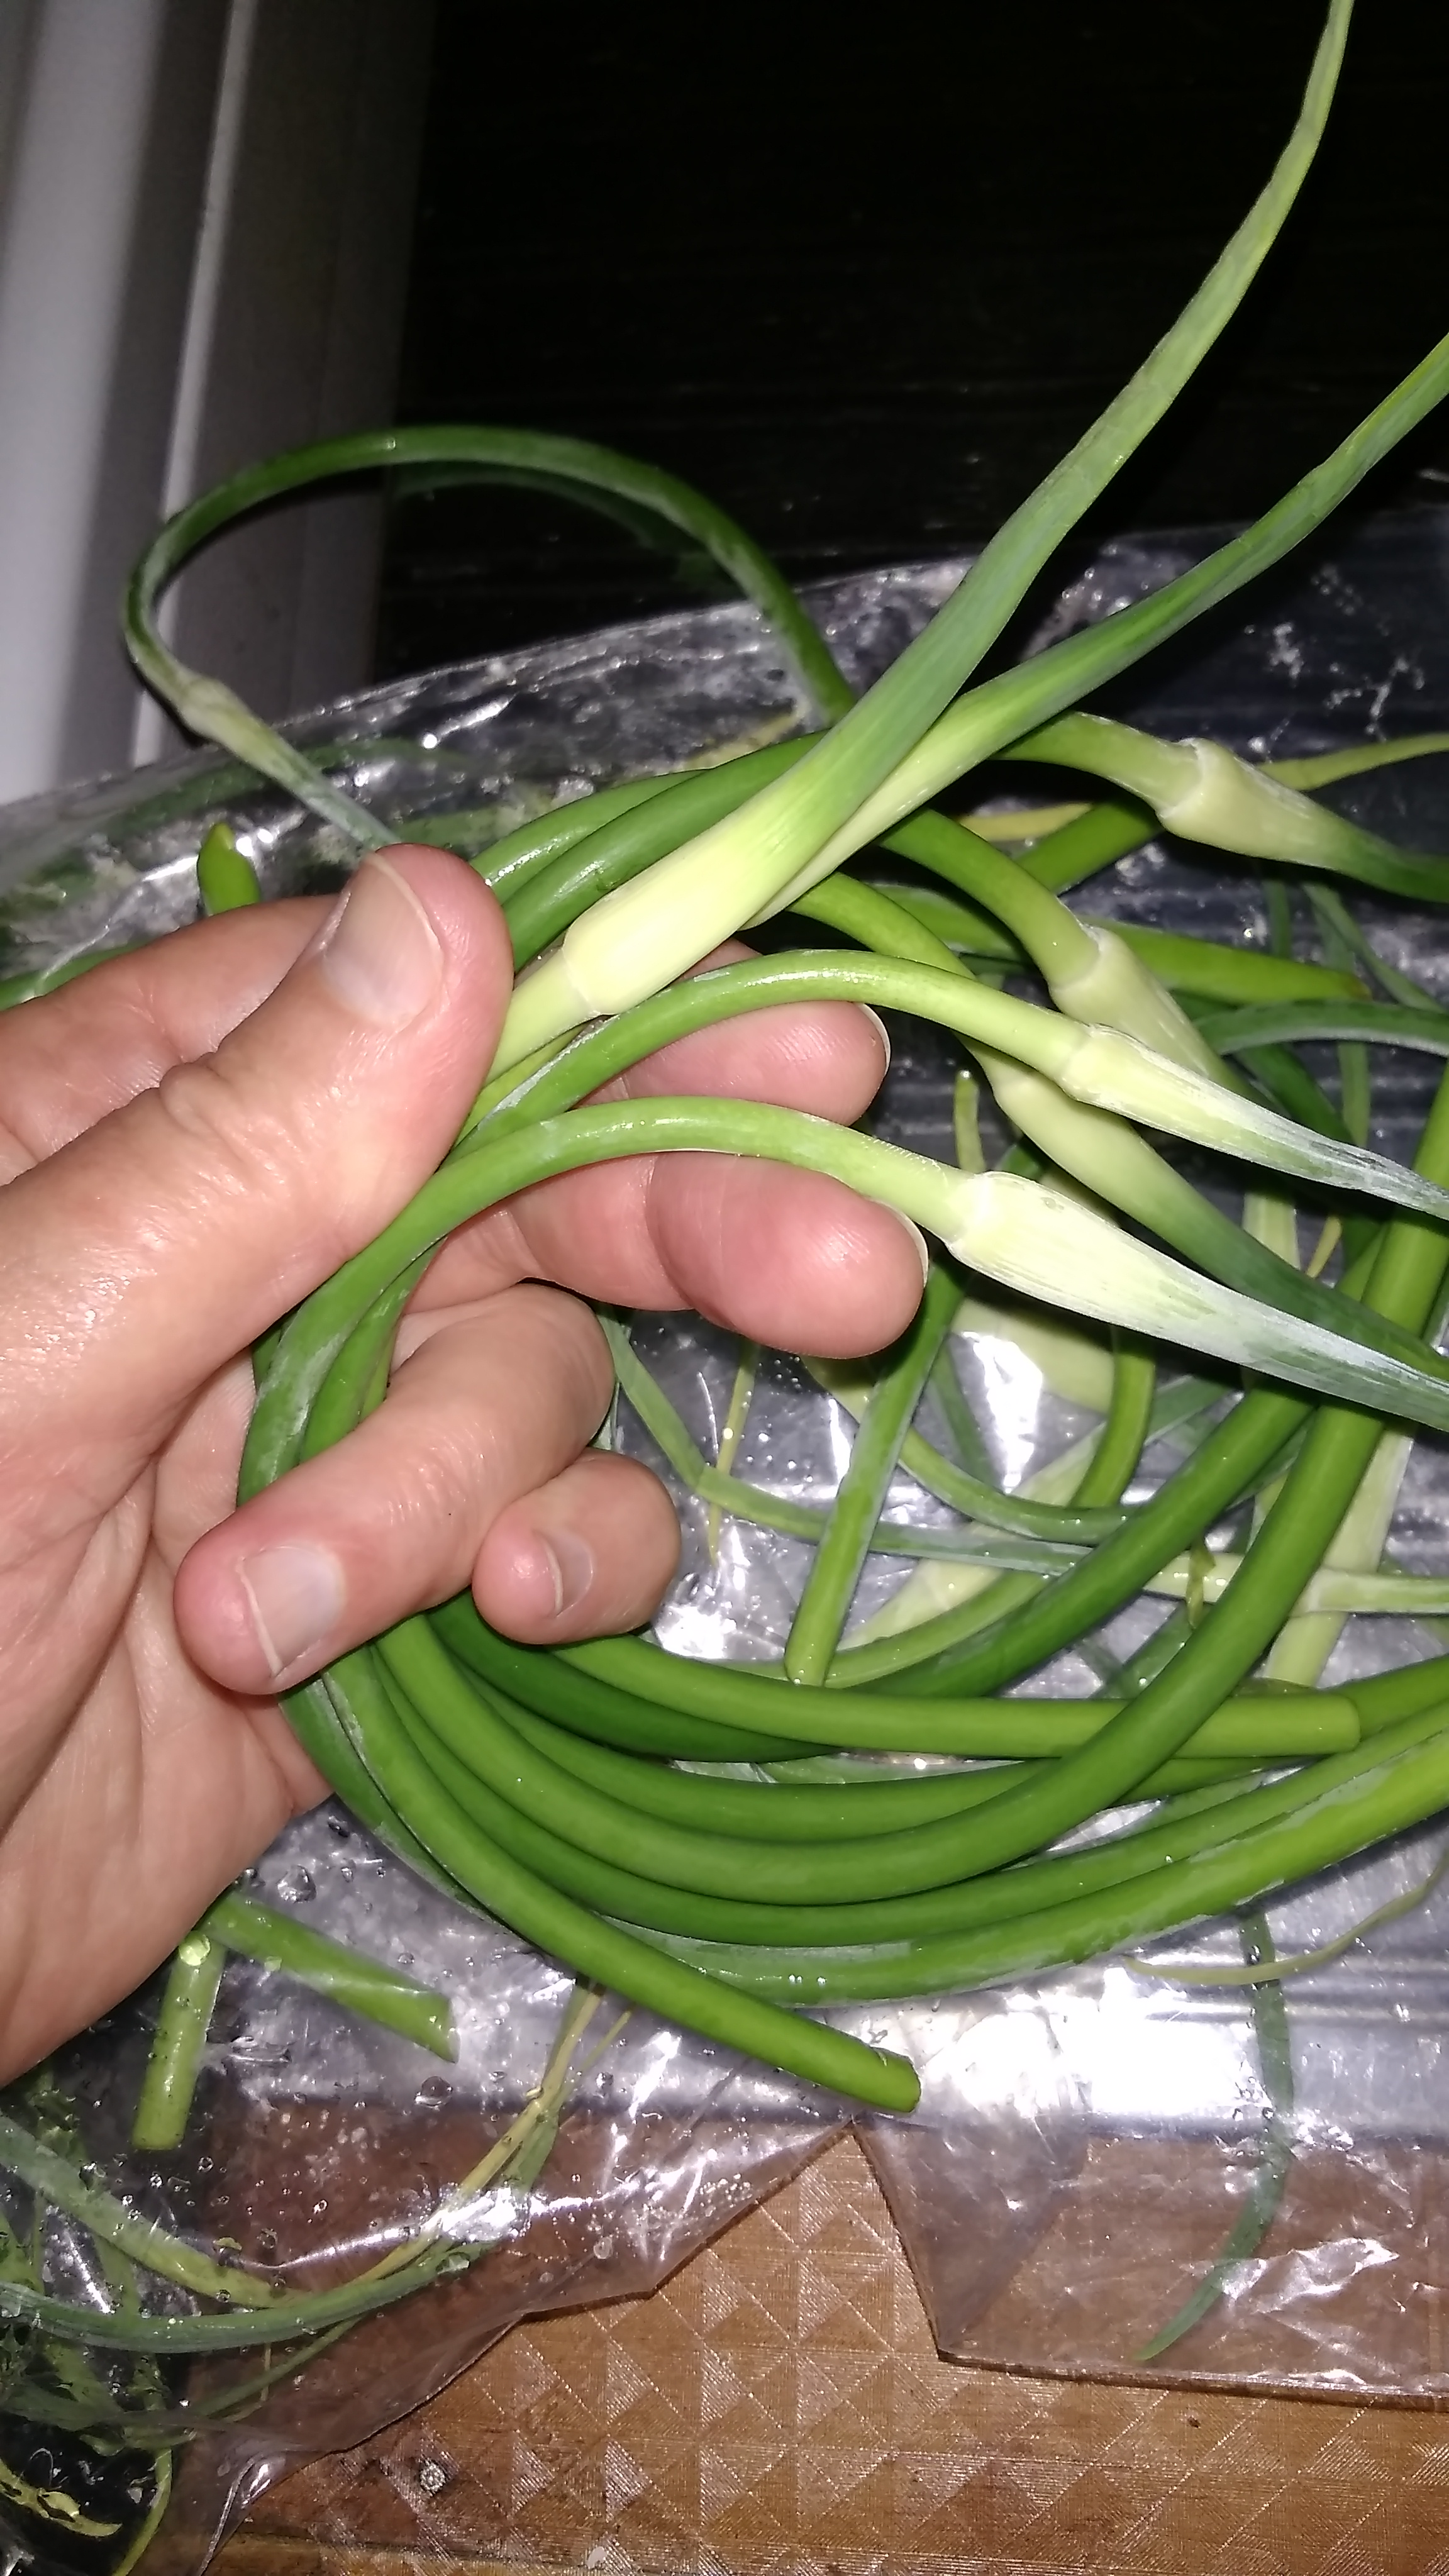 How to grow garlic - snip off the garlic scapes